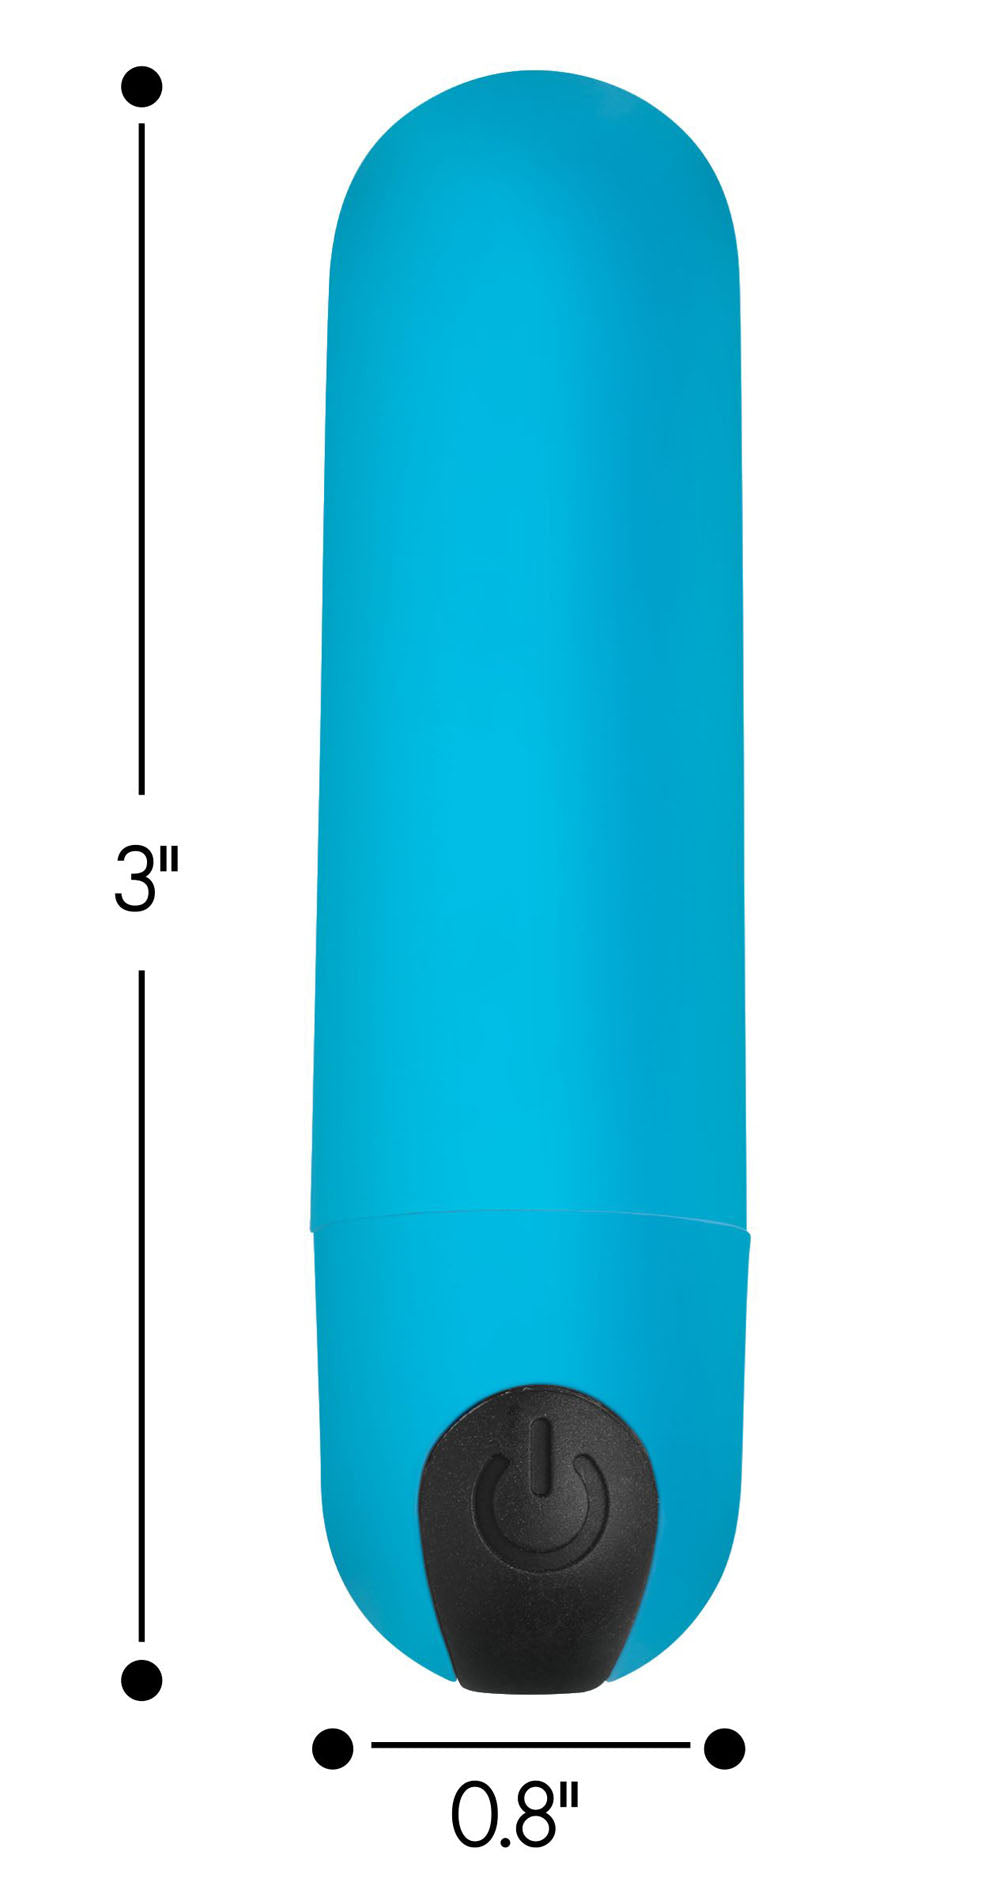 Bang Vibrating Bullet With Remote Control - Blue